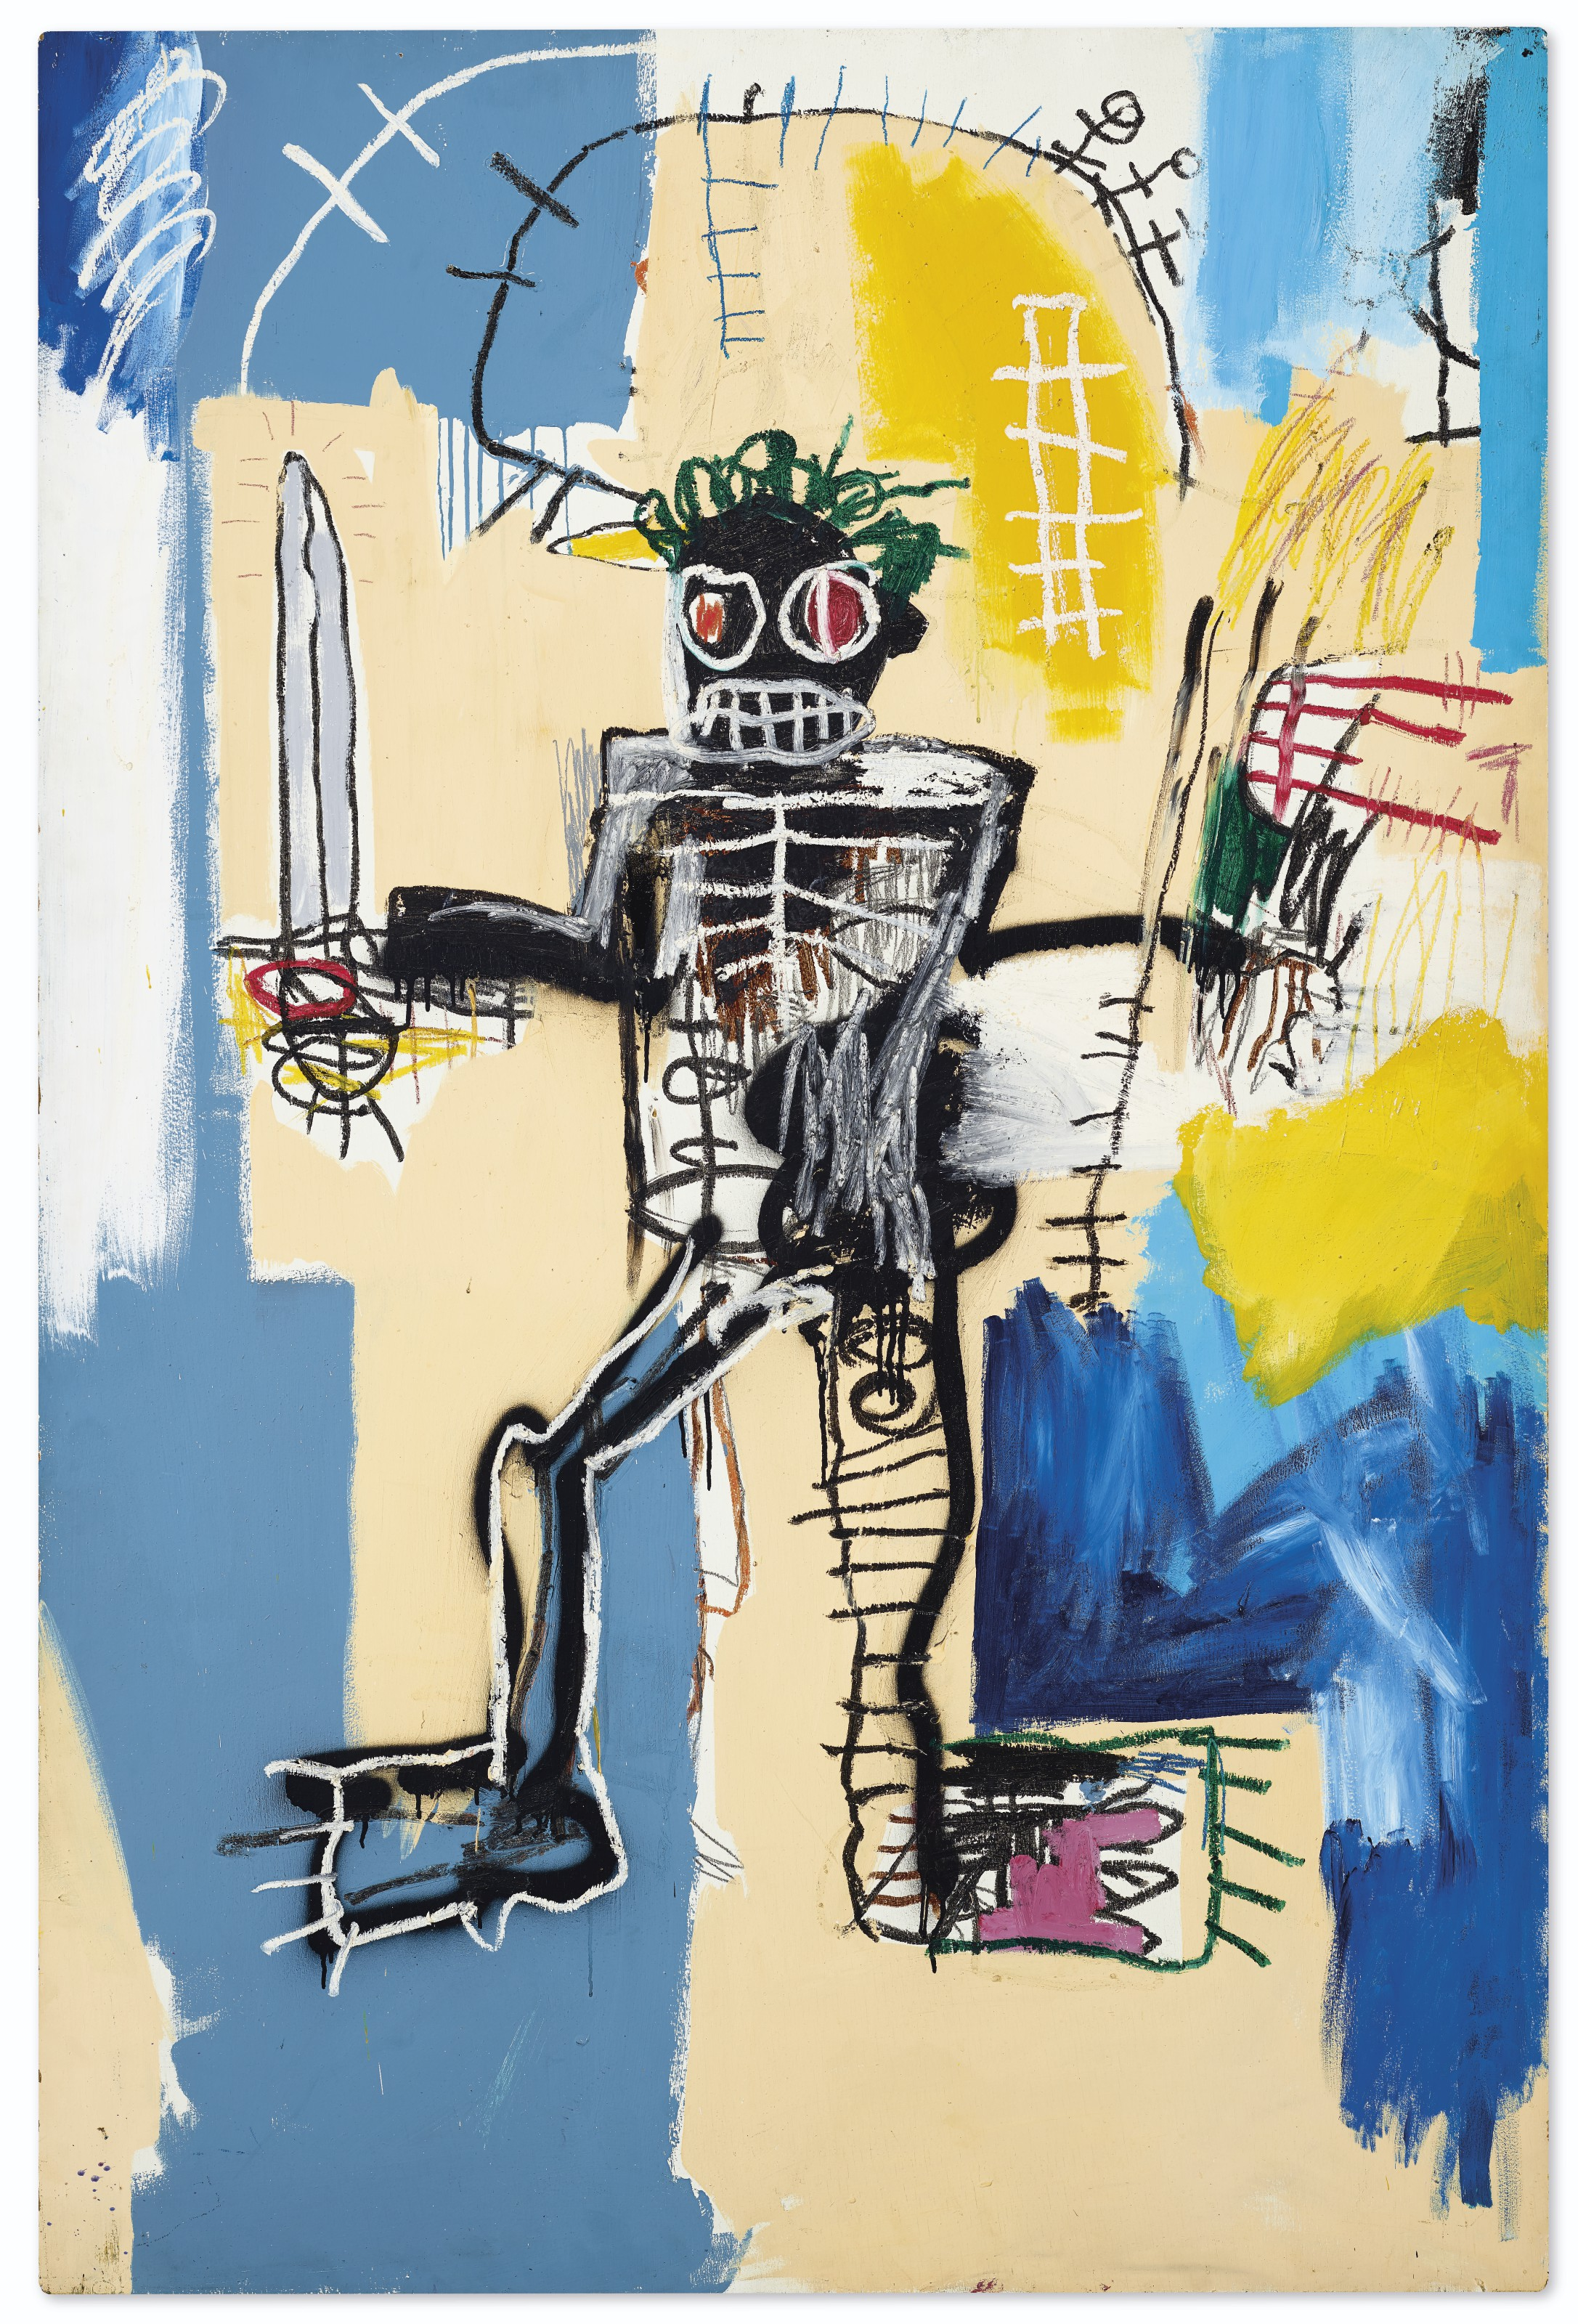 Jean-Michel Basquiat (1960-1988), Warrior, 1982.Acrylic, oilstick and spray paint on wood panel. 72 x 48 in. (183 x 122 cm.). Sold for HK$323,600,000 on 23 March 2021 at Christie's in Hong Kong